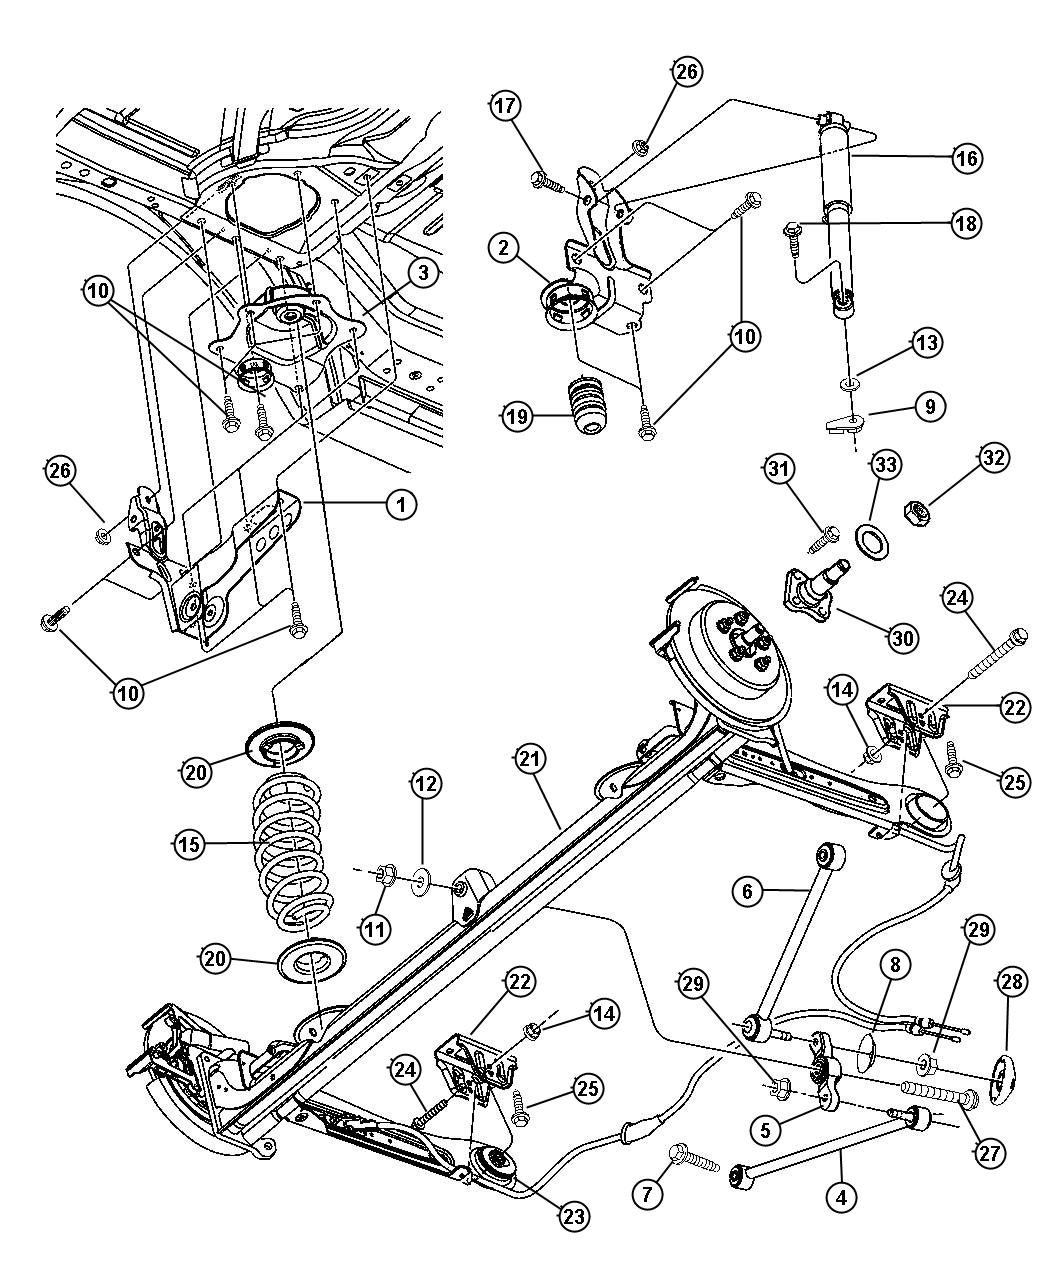 2000 daewoo korando air bag fuse box diagram